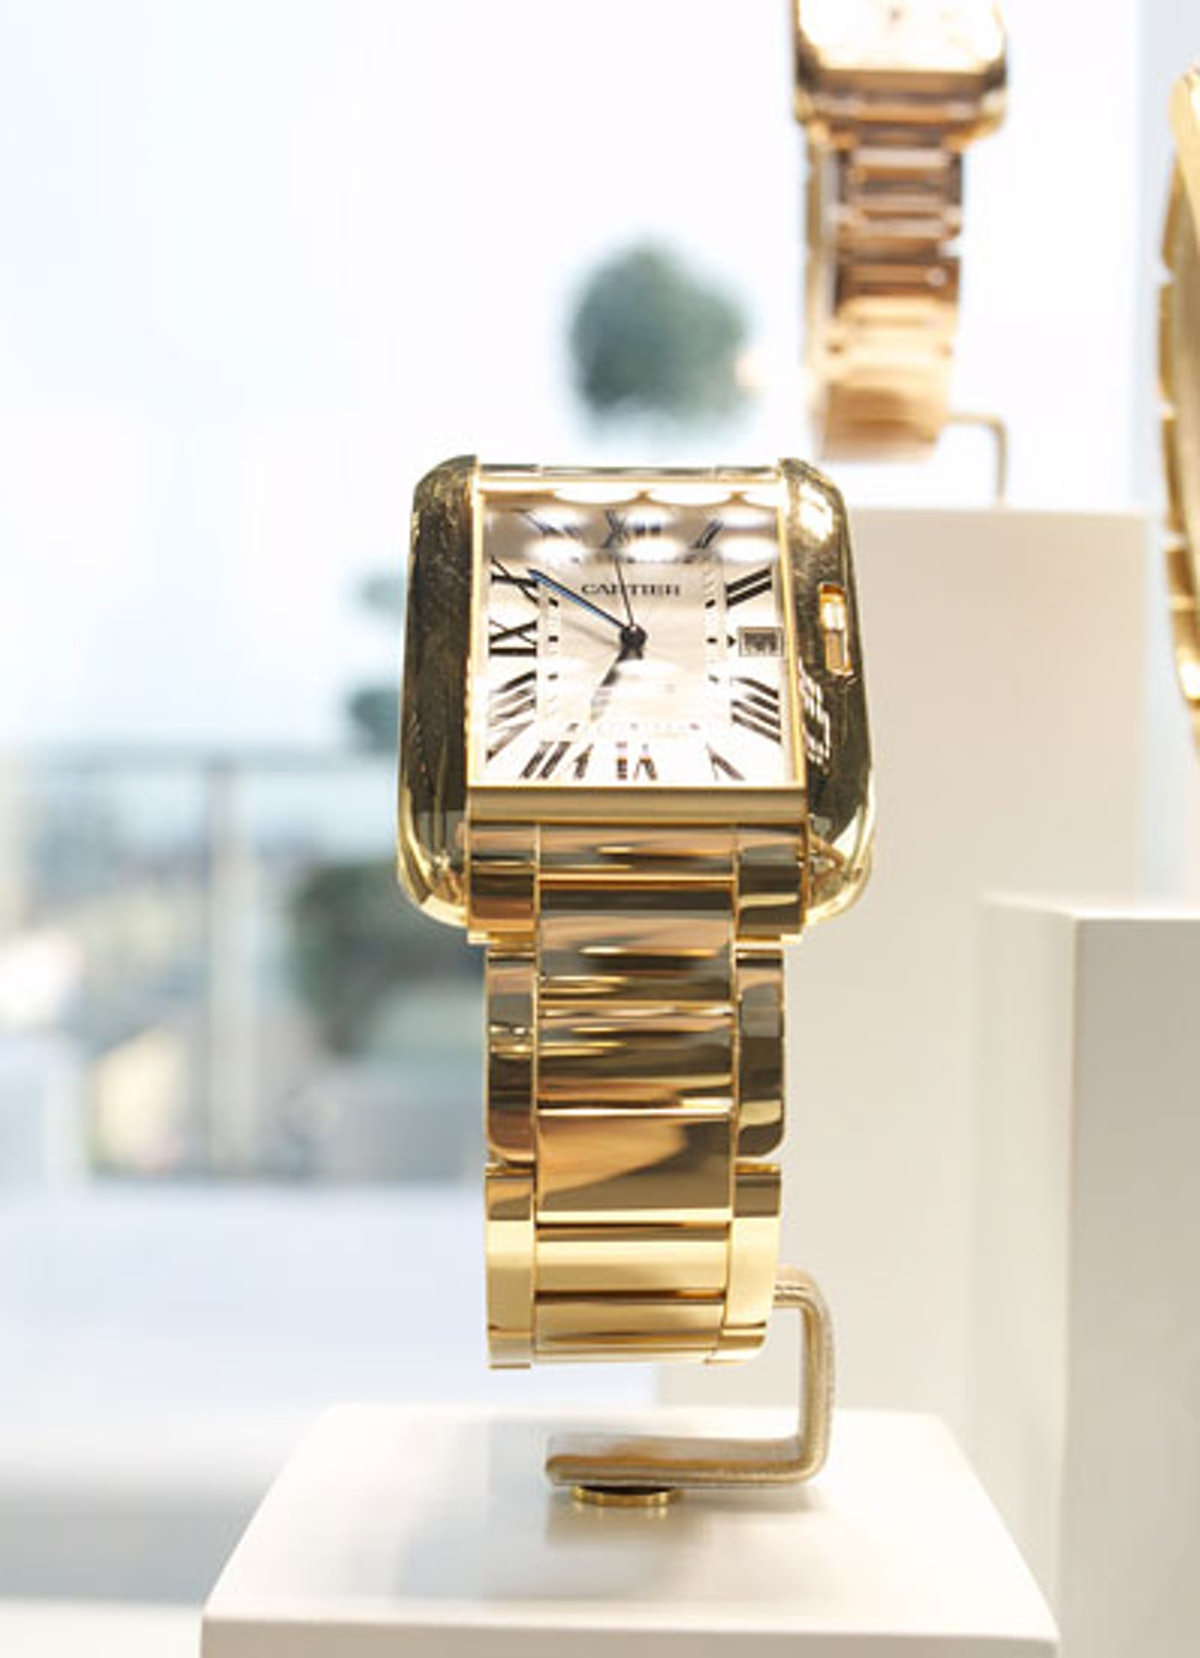 pass-cartier-tank-anglaise-party-07-v.jpg